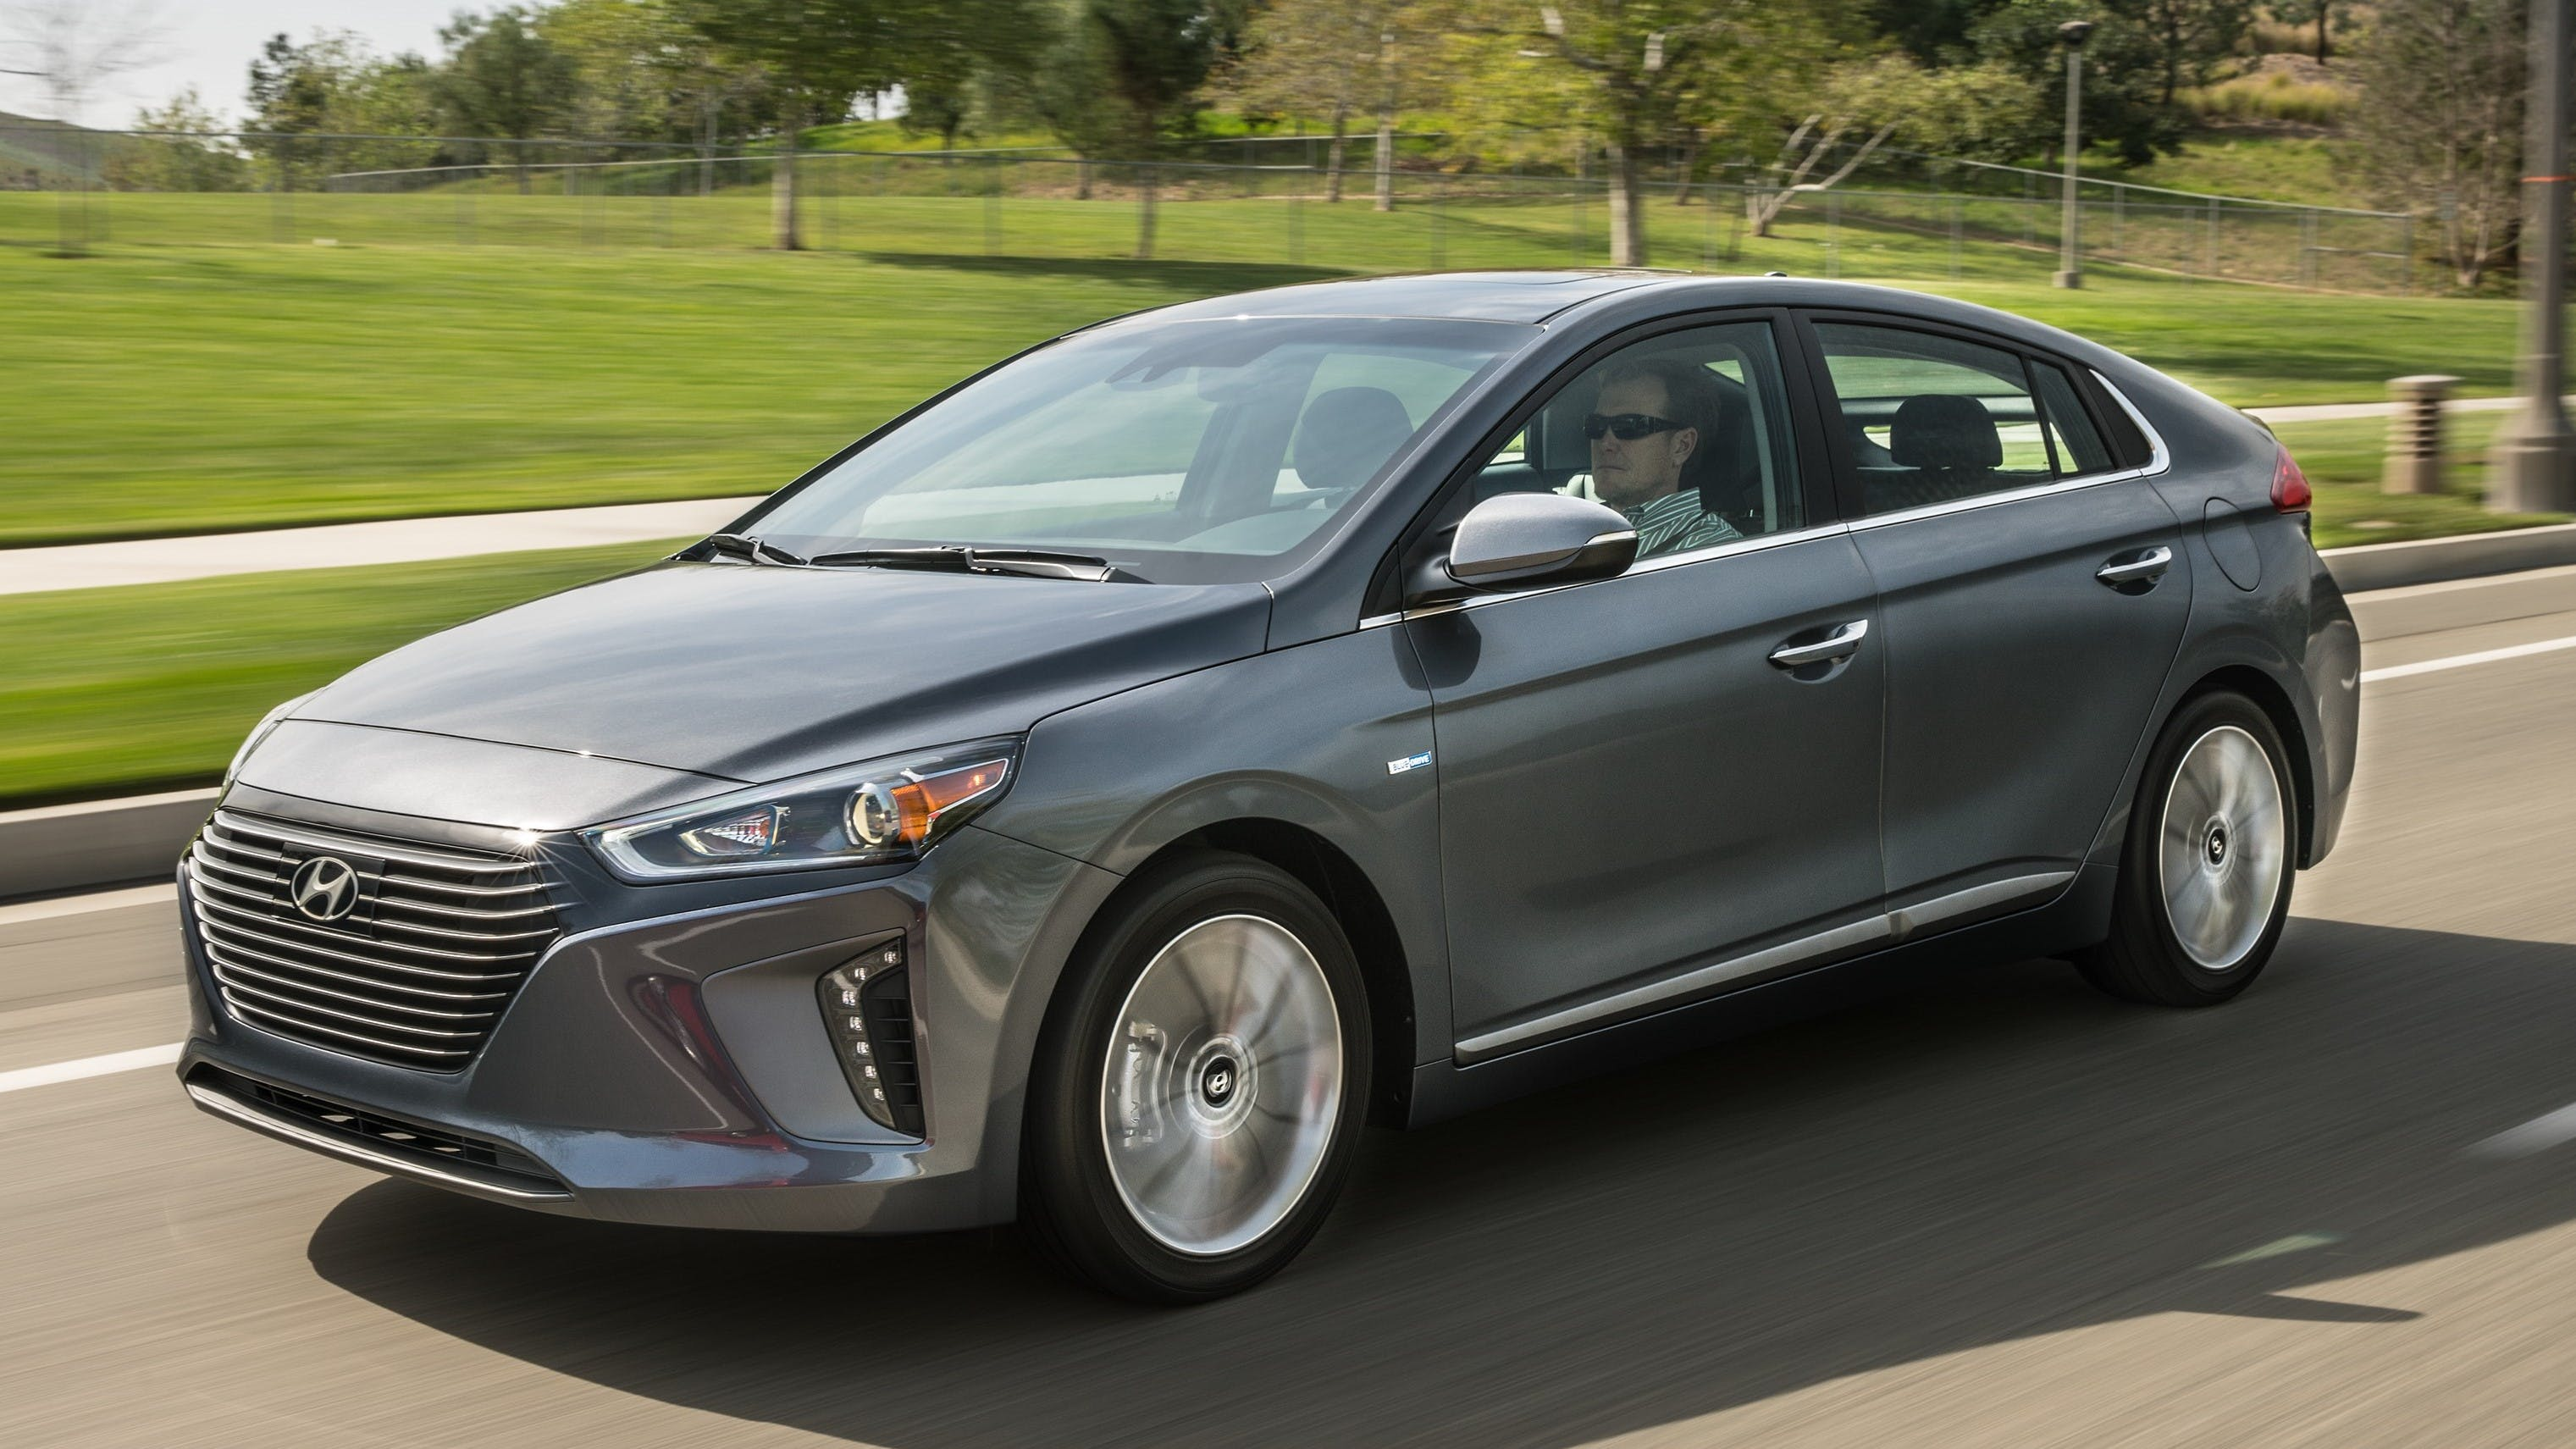 Used Cars With the Best Gas Mileage in 2020